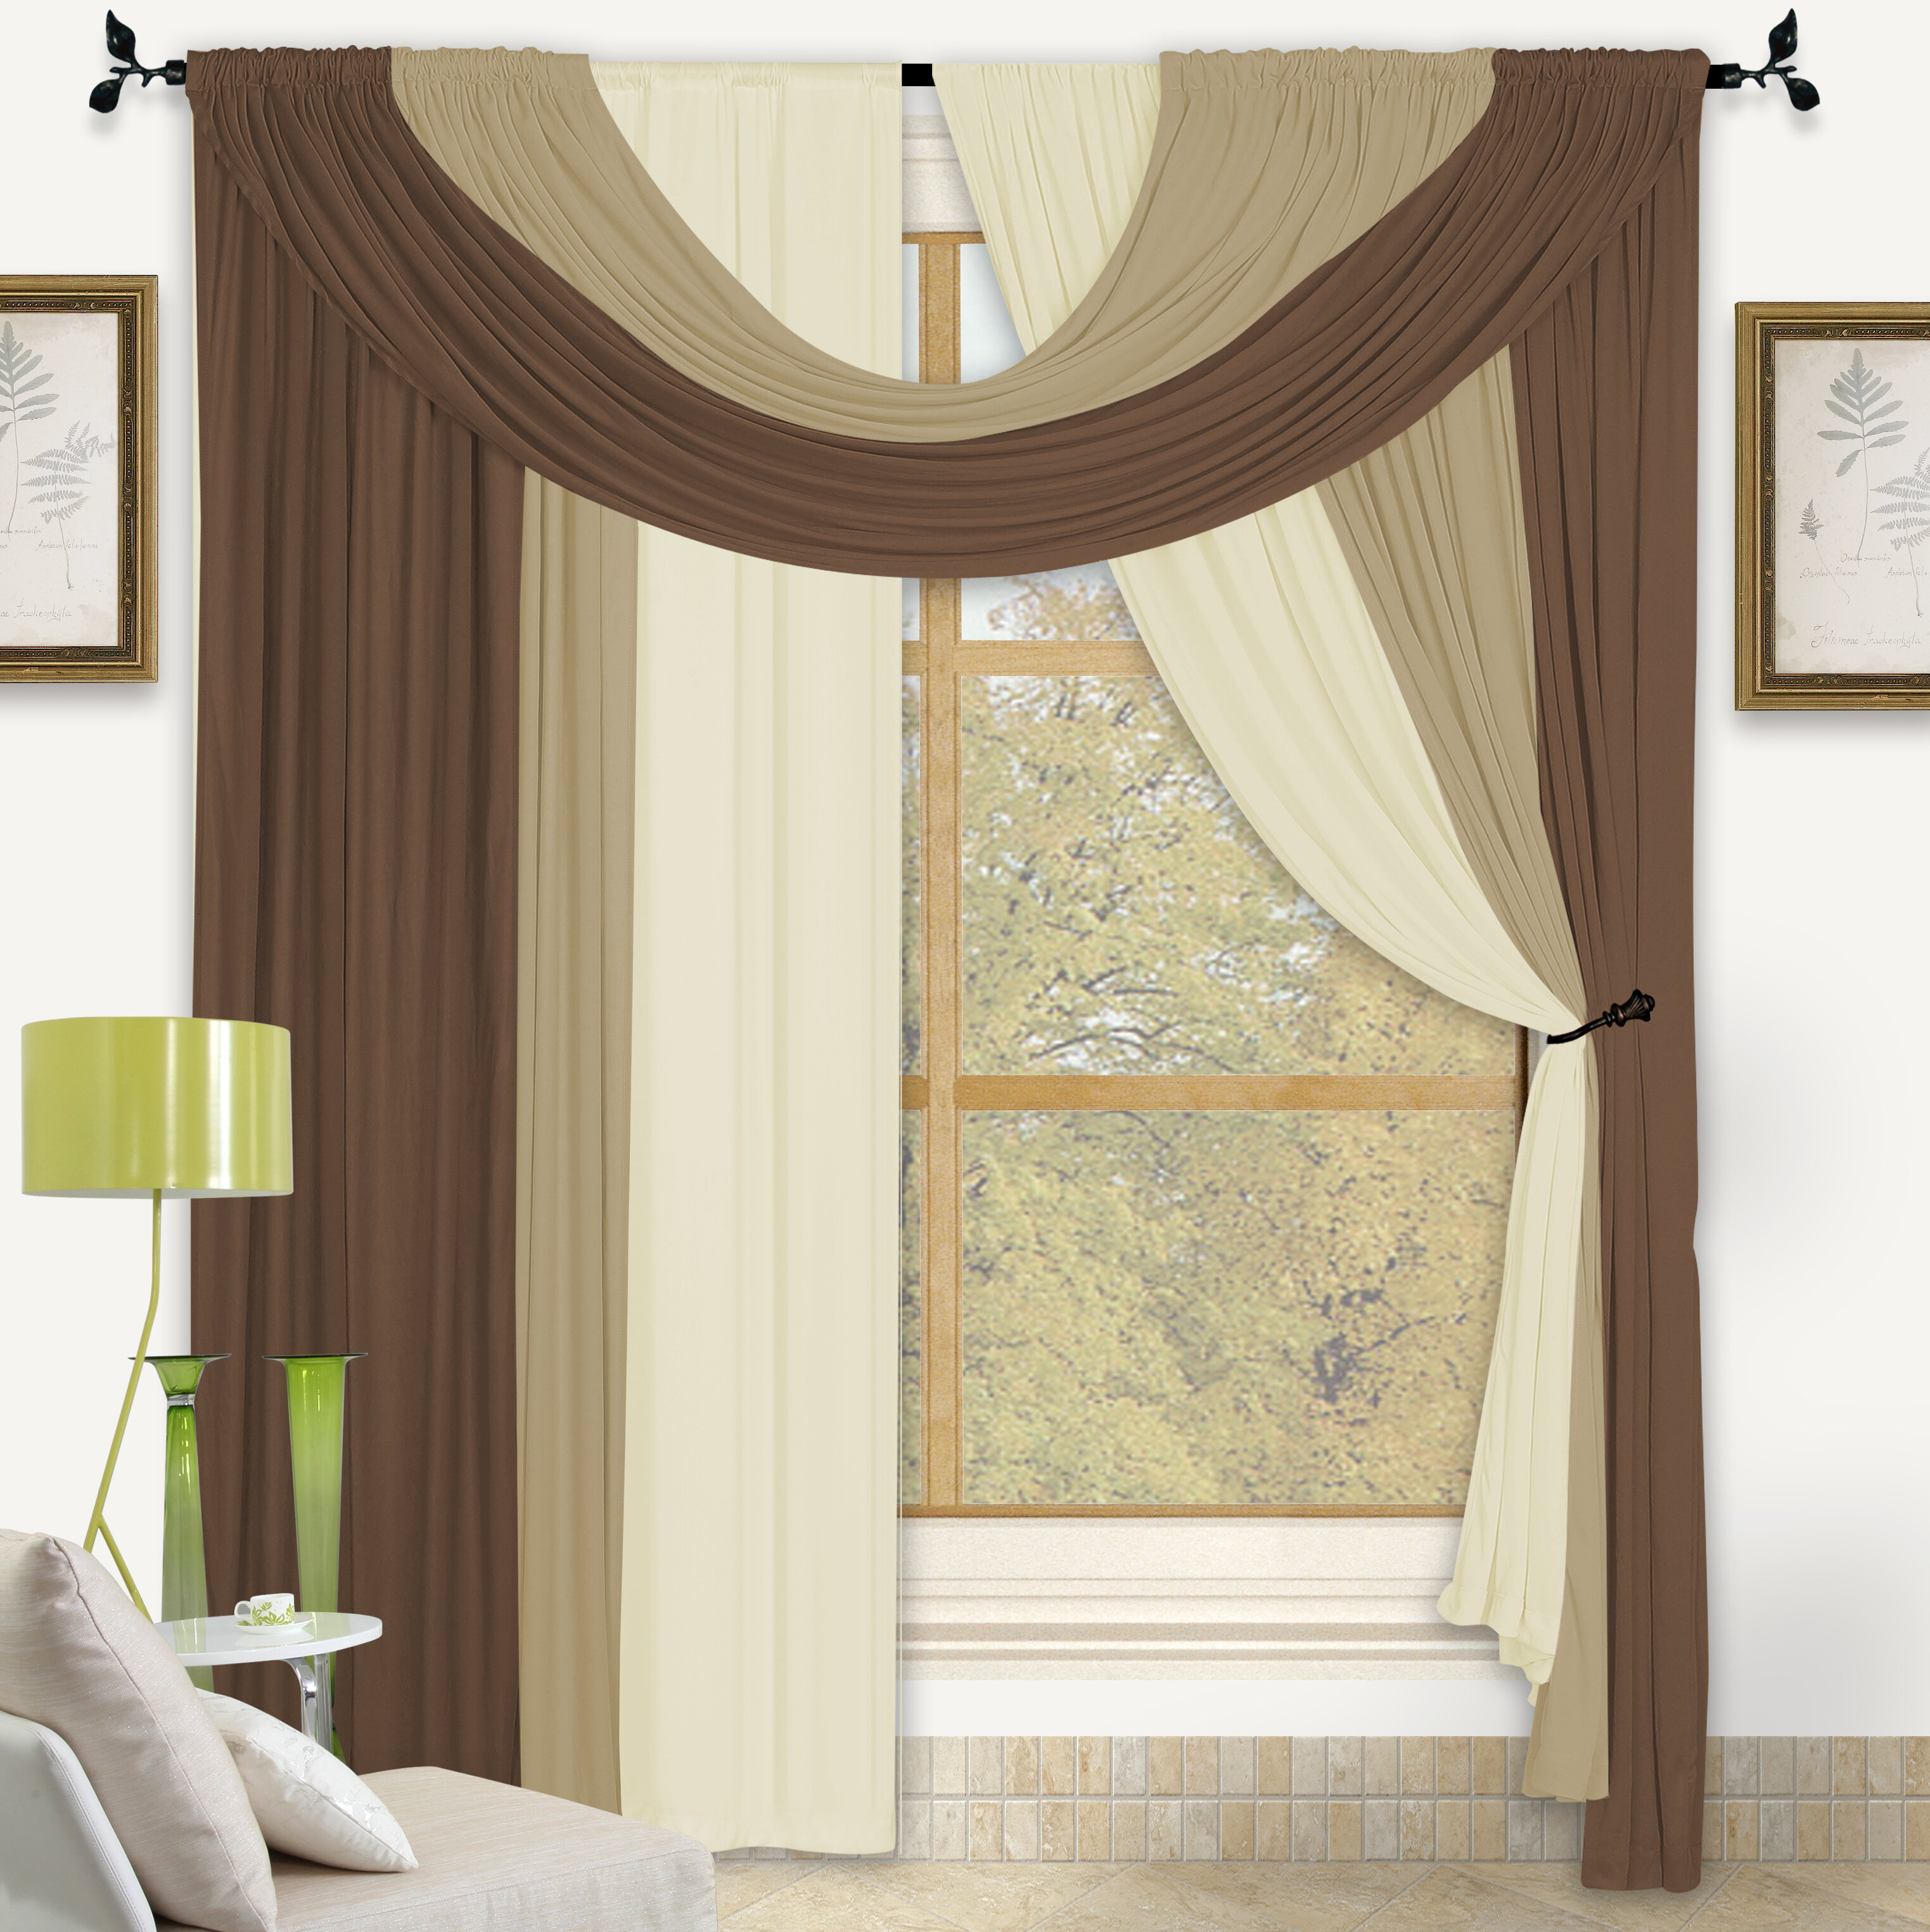 windows scarf valance biz doors large kitchen curtain make sliding decor curtains pinte window decorating ideas plus interior patio to themiracle treatments ctional target s valances home bu along burlap door adorable corner with how office